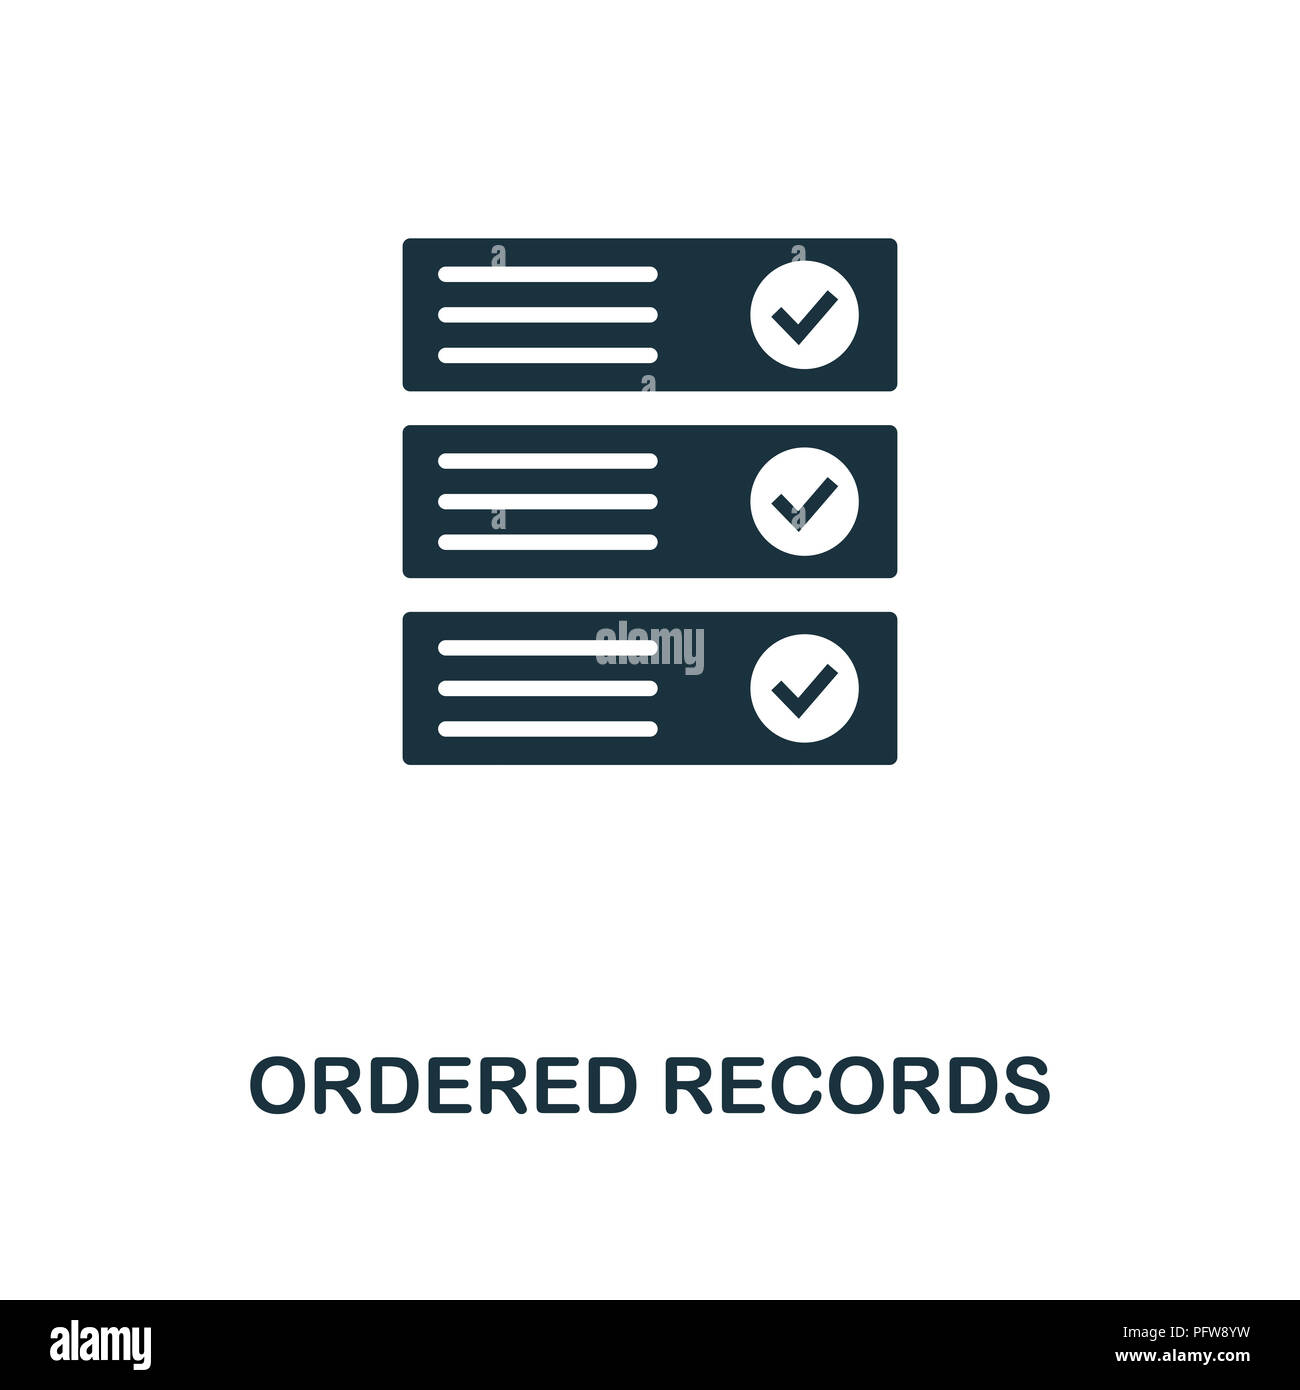 Ordered Records icon. Monochrome style design from crypto currency collection. UI. Pixel perfect simple pictogram ordered records icon. Web design, ap - Stock Image